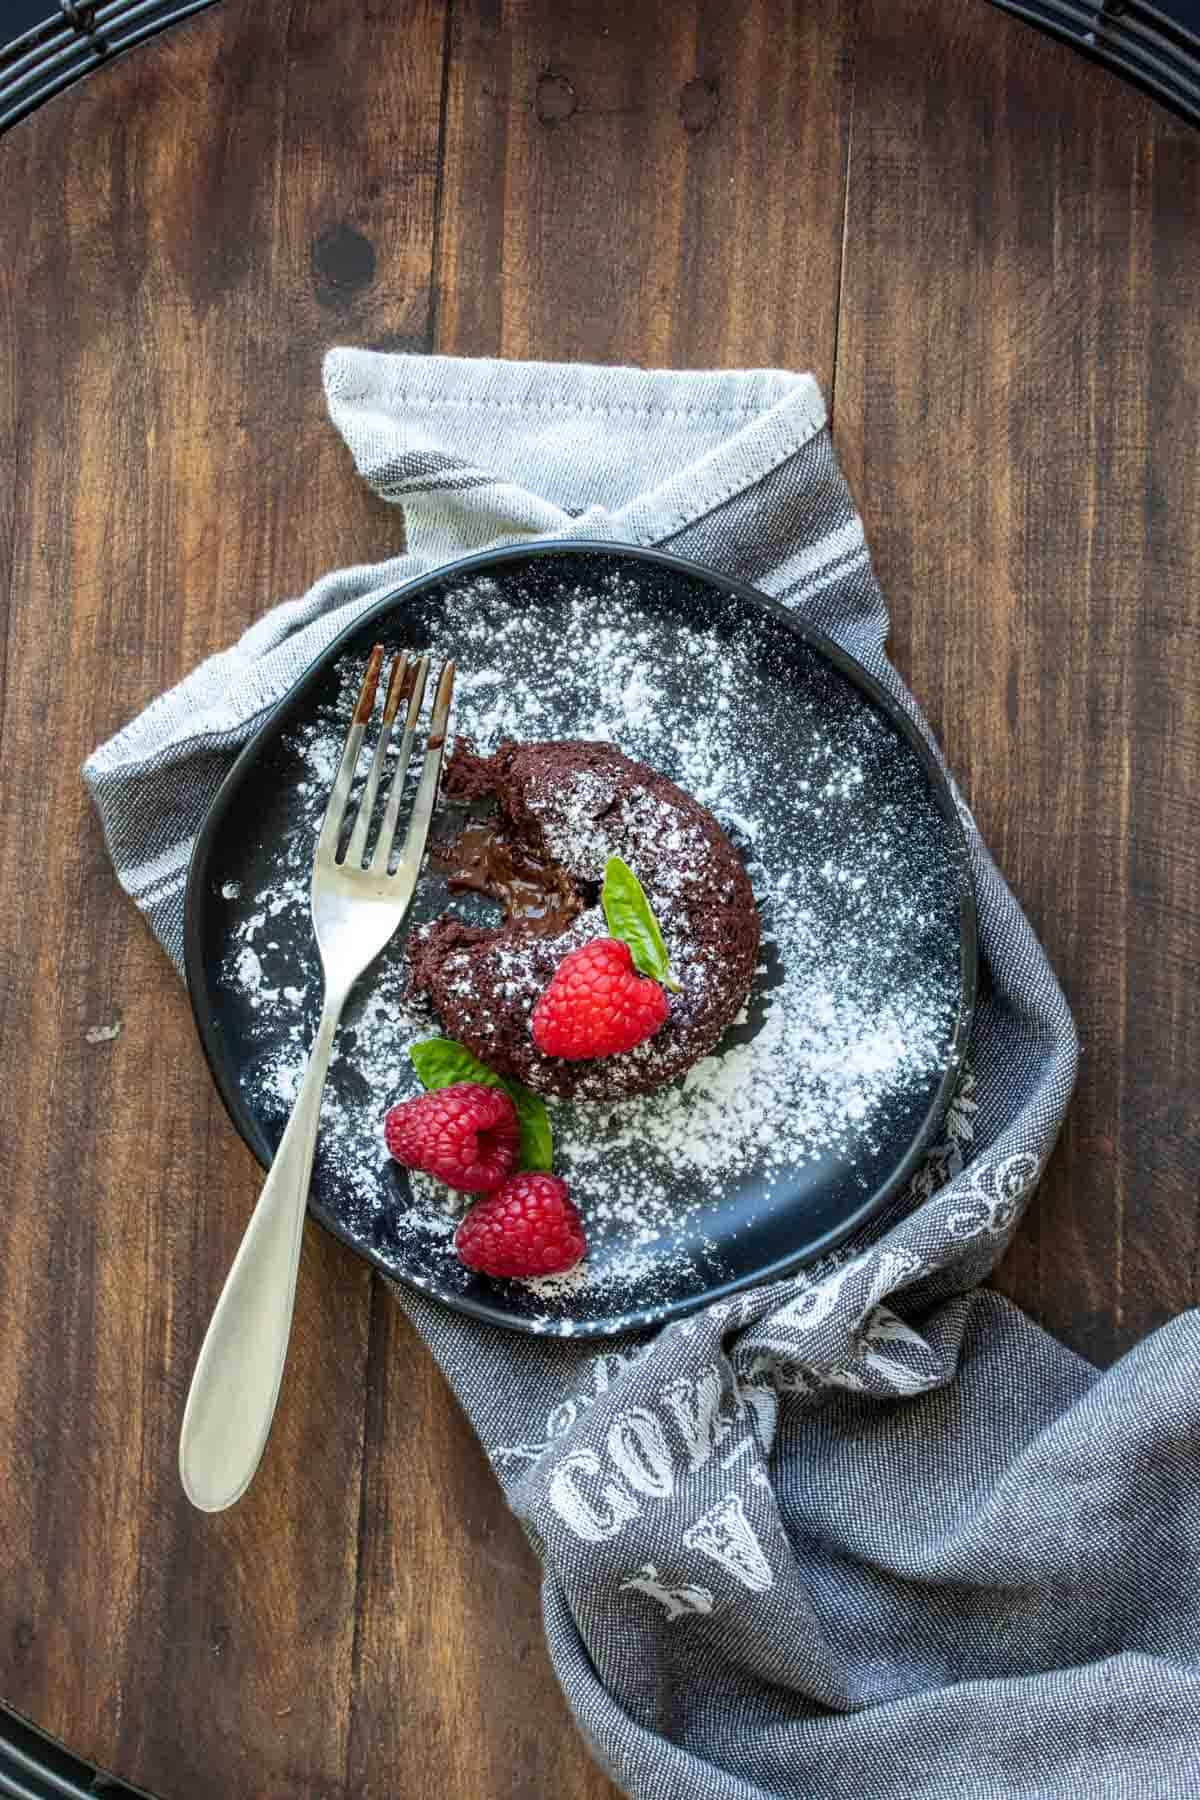 Top view of a chocolate lava cake with a bite out of it on a black plate